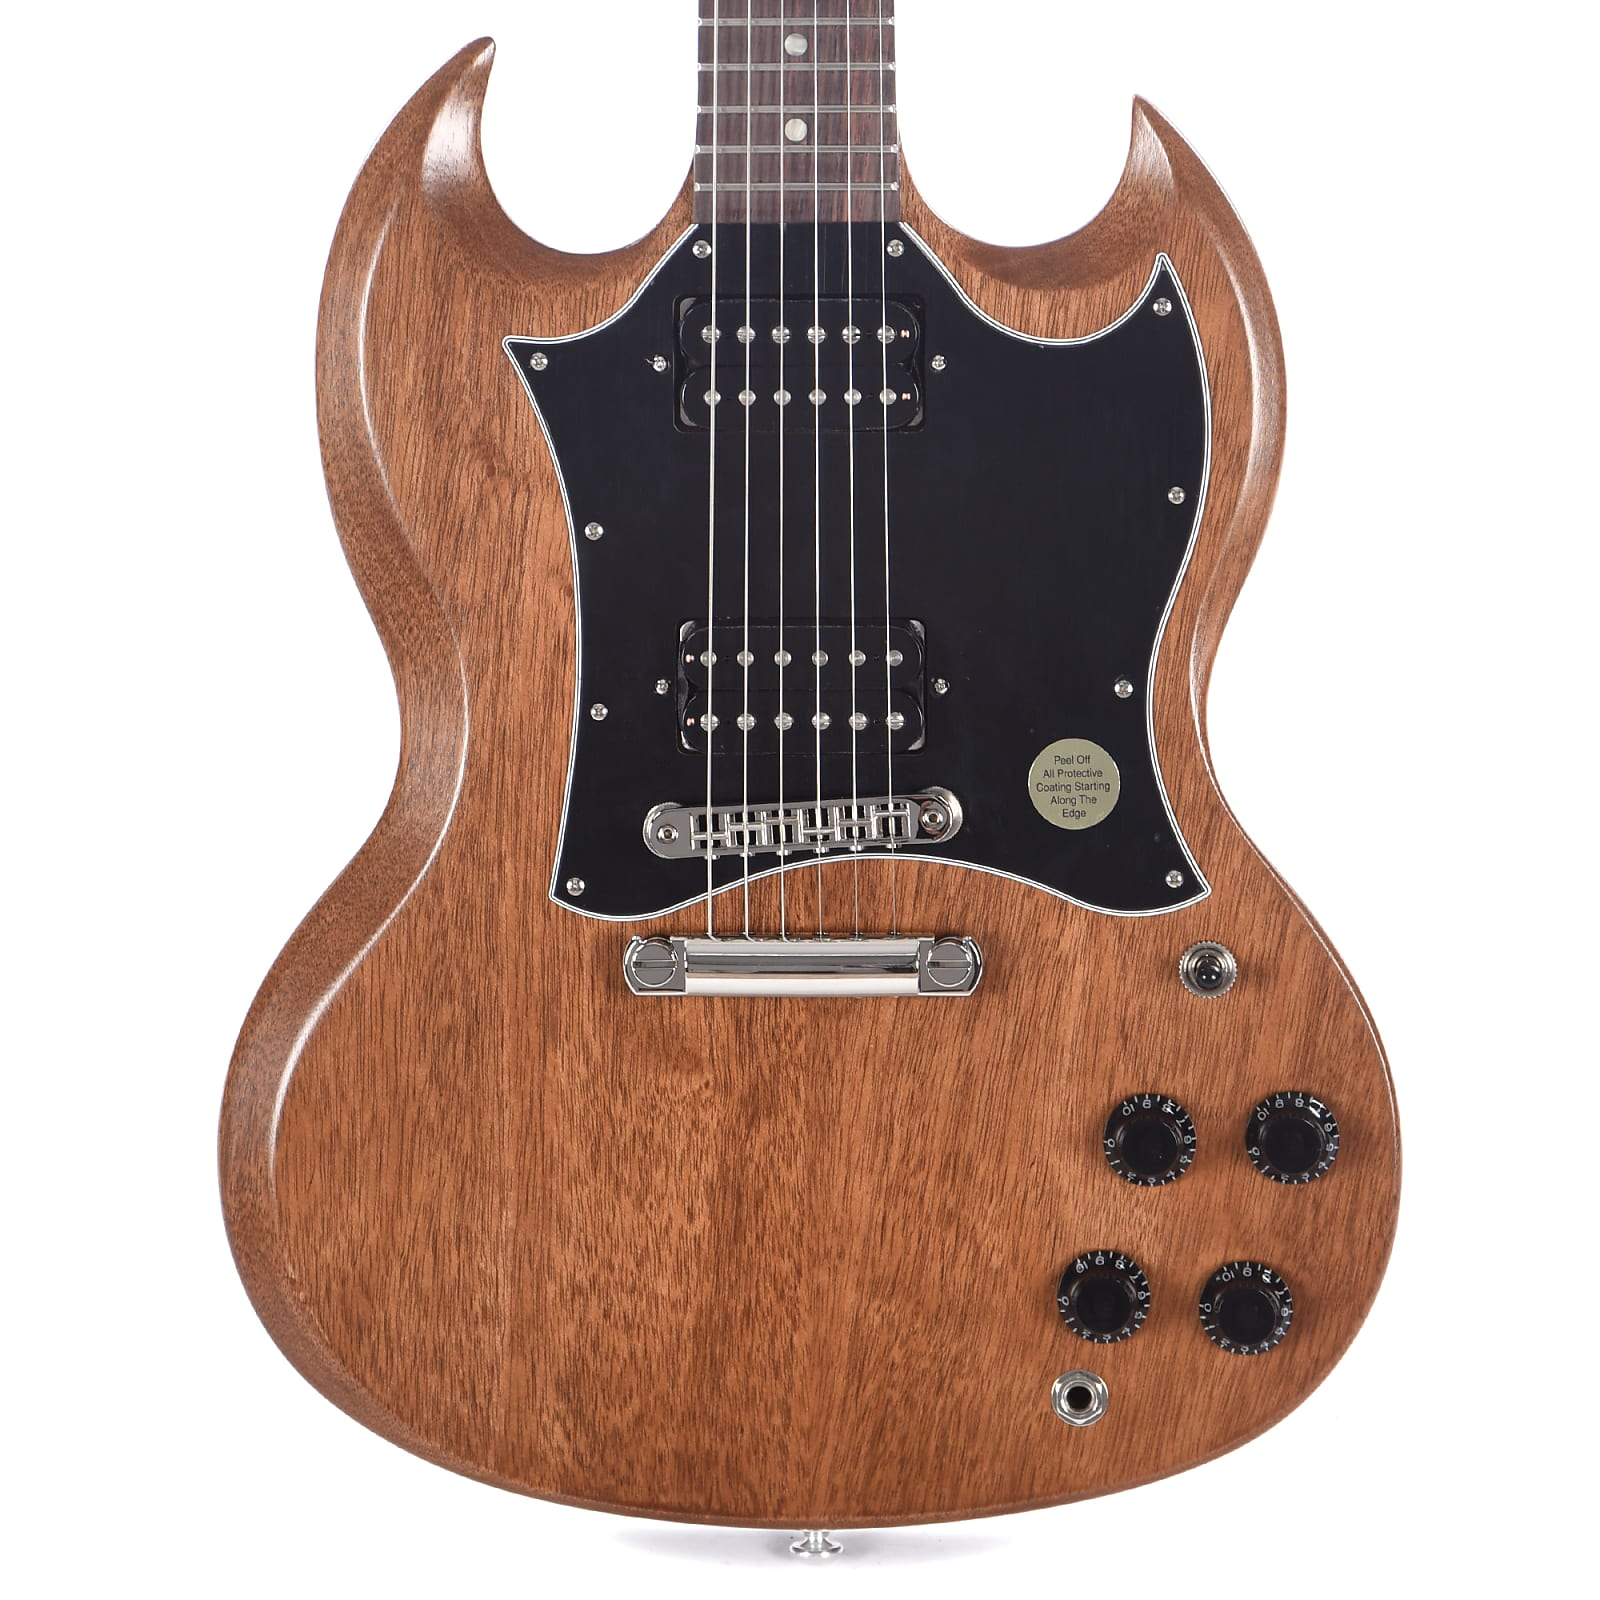 Gibson SG Tribute Natural Walnut SGTR005NNH1 Indonesia 2019 Gibson - HIENDGUITAR.COM